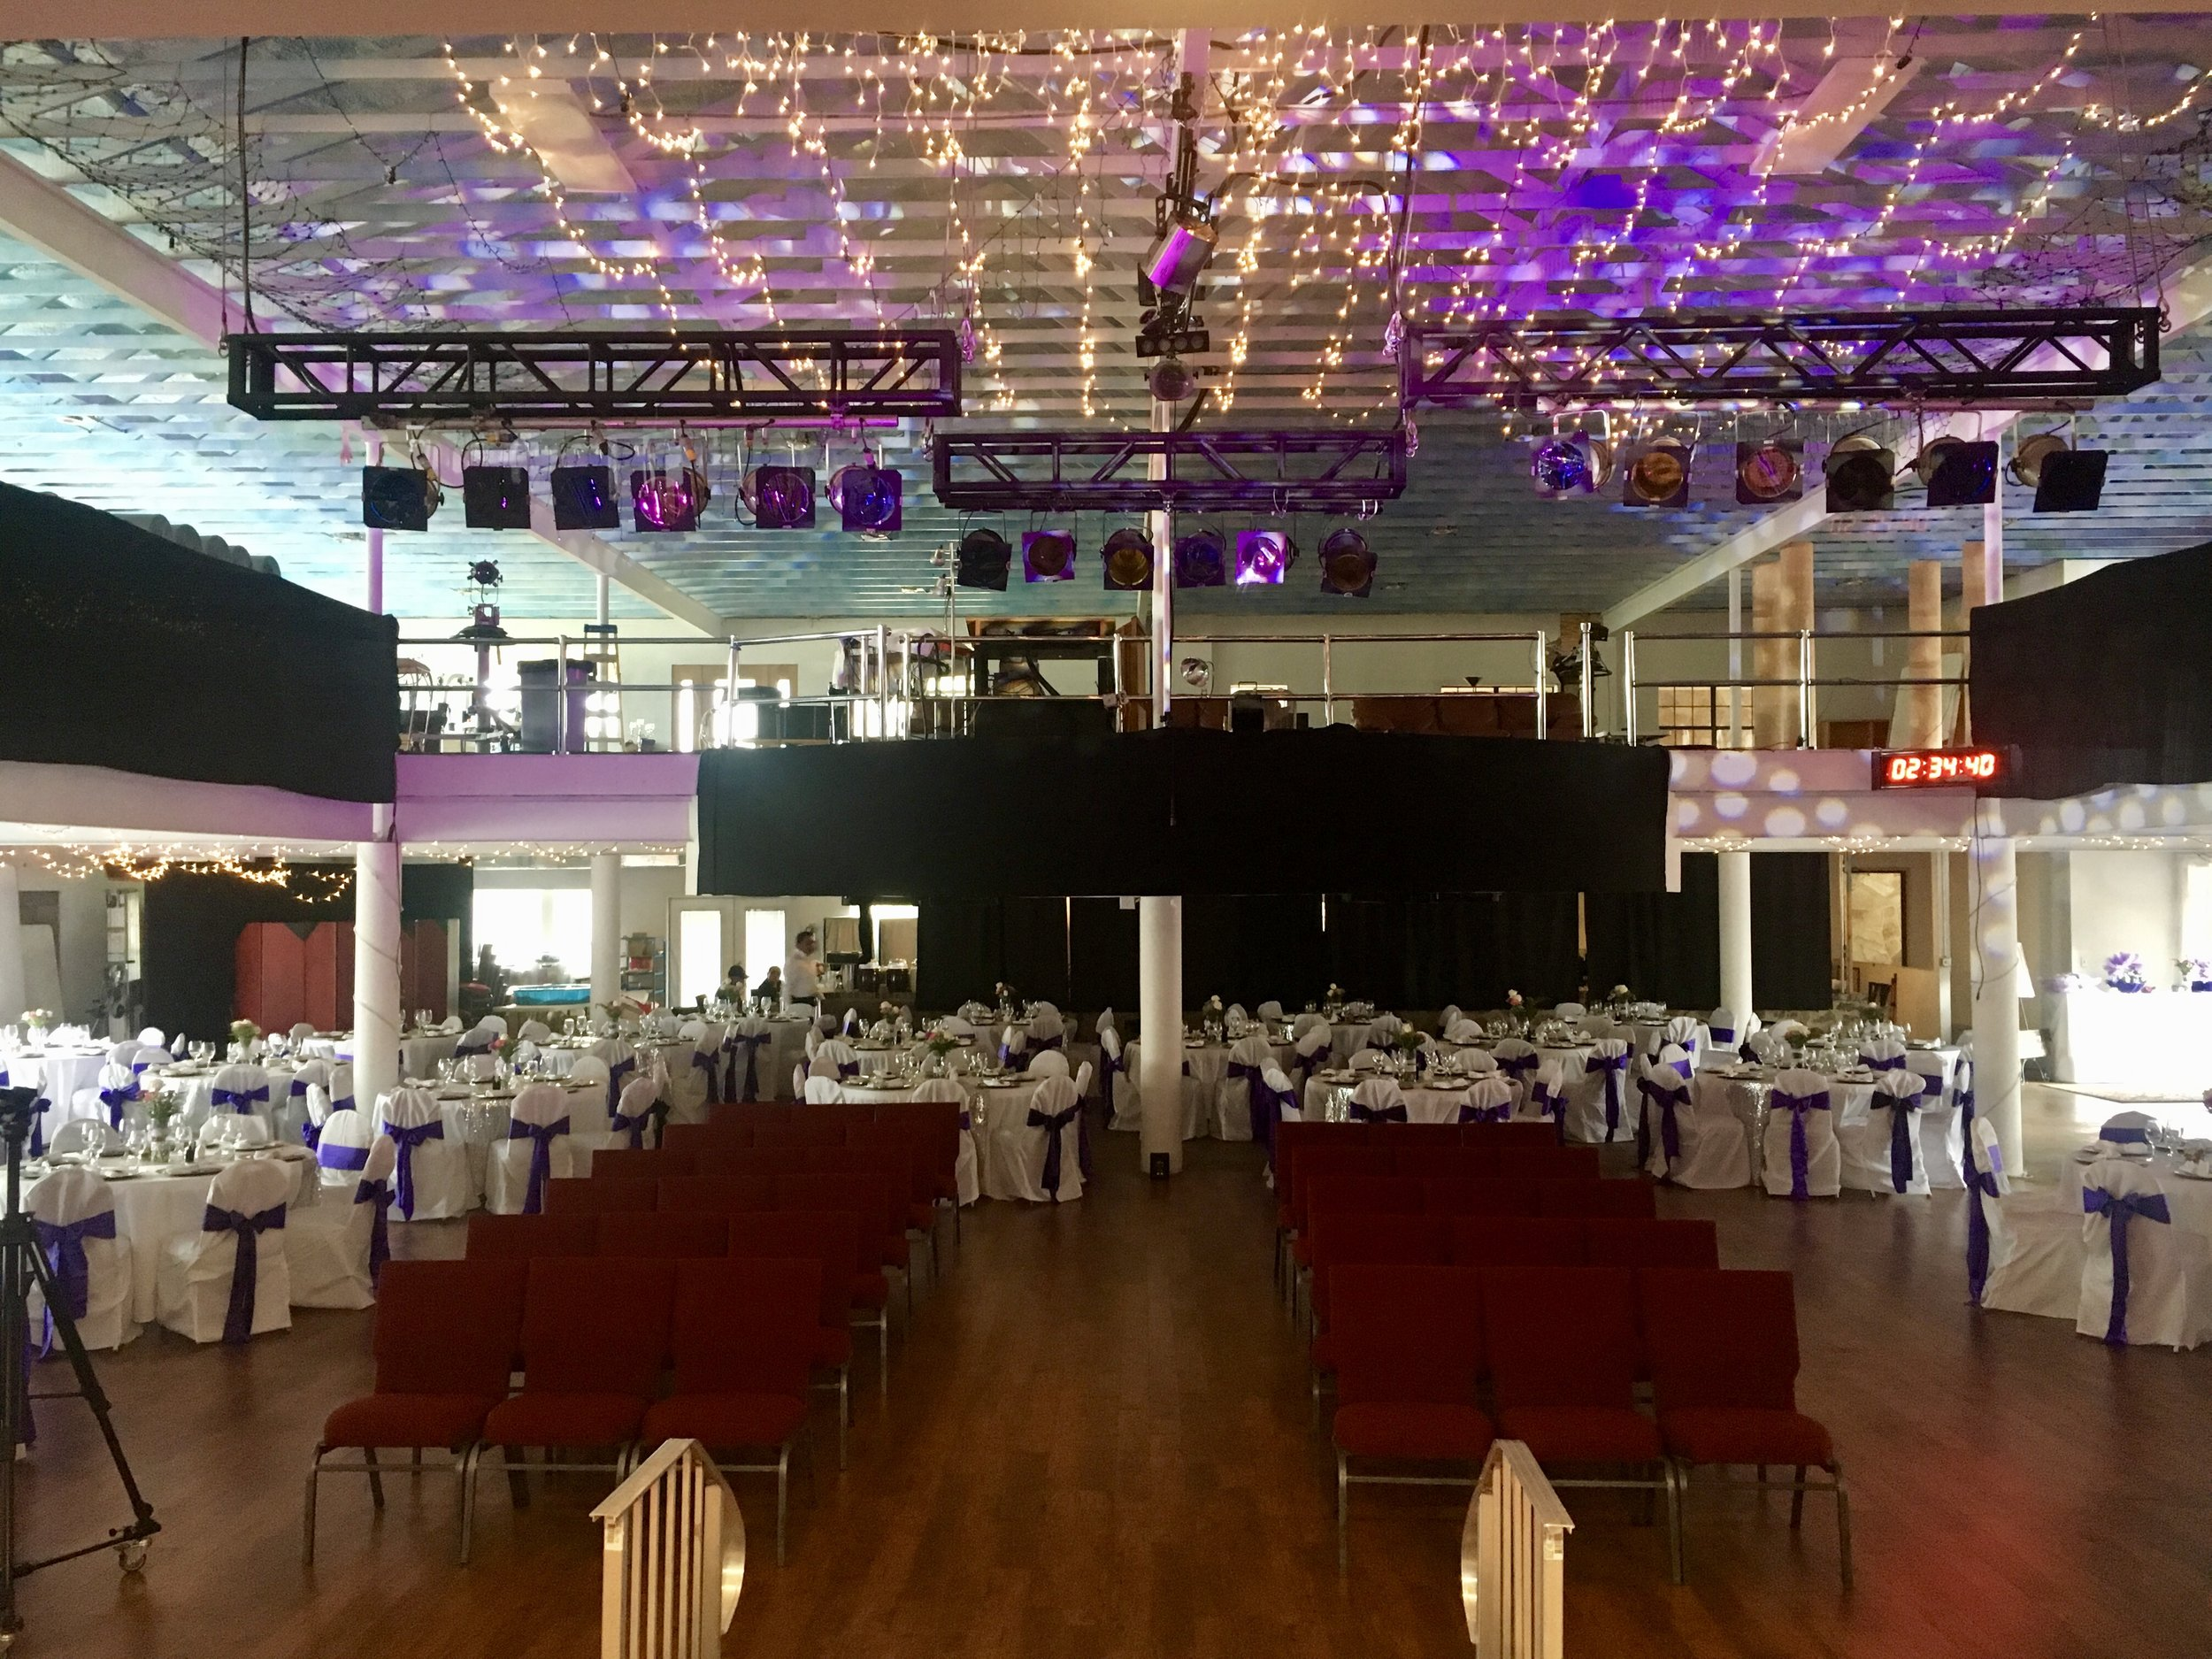 event accommodations - Banquets, Birthday parties, Class reunions, Club meetings, Conferences, Corporate retreats, Family reunions, Graduations, Holiday parties, Honeymoon, Receptions, Weddings